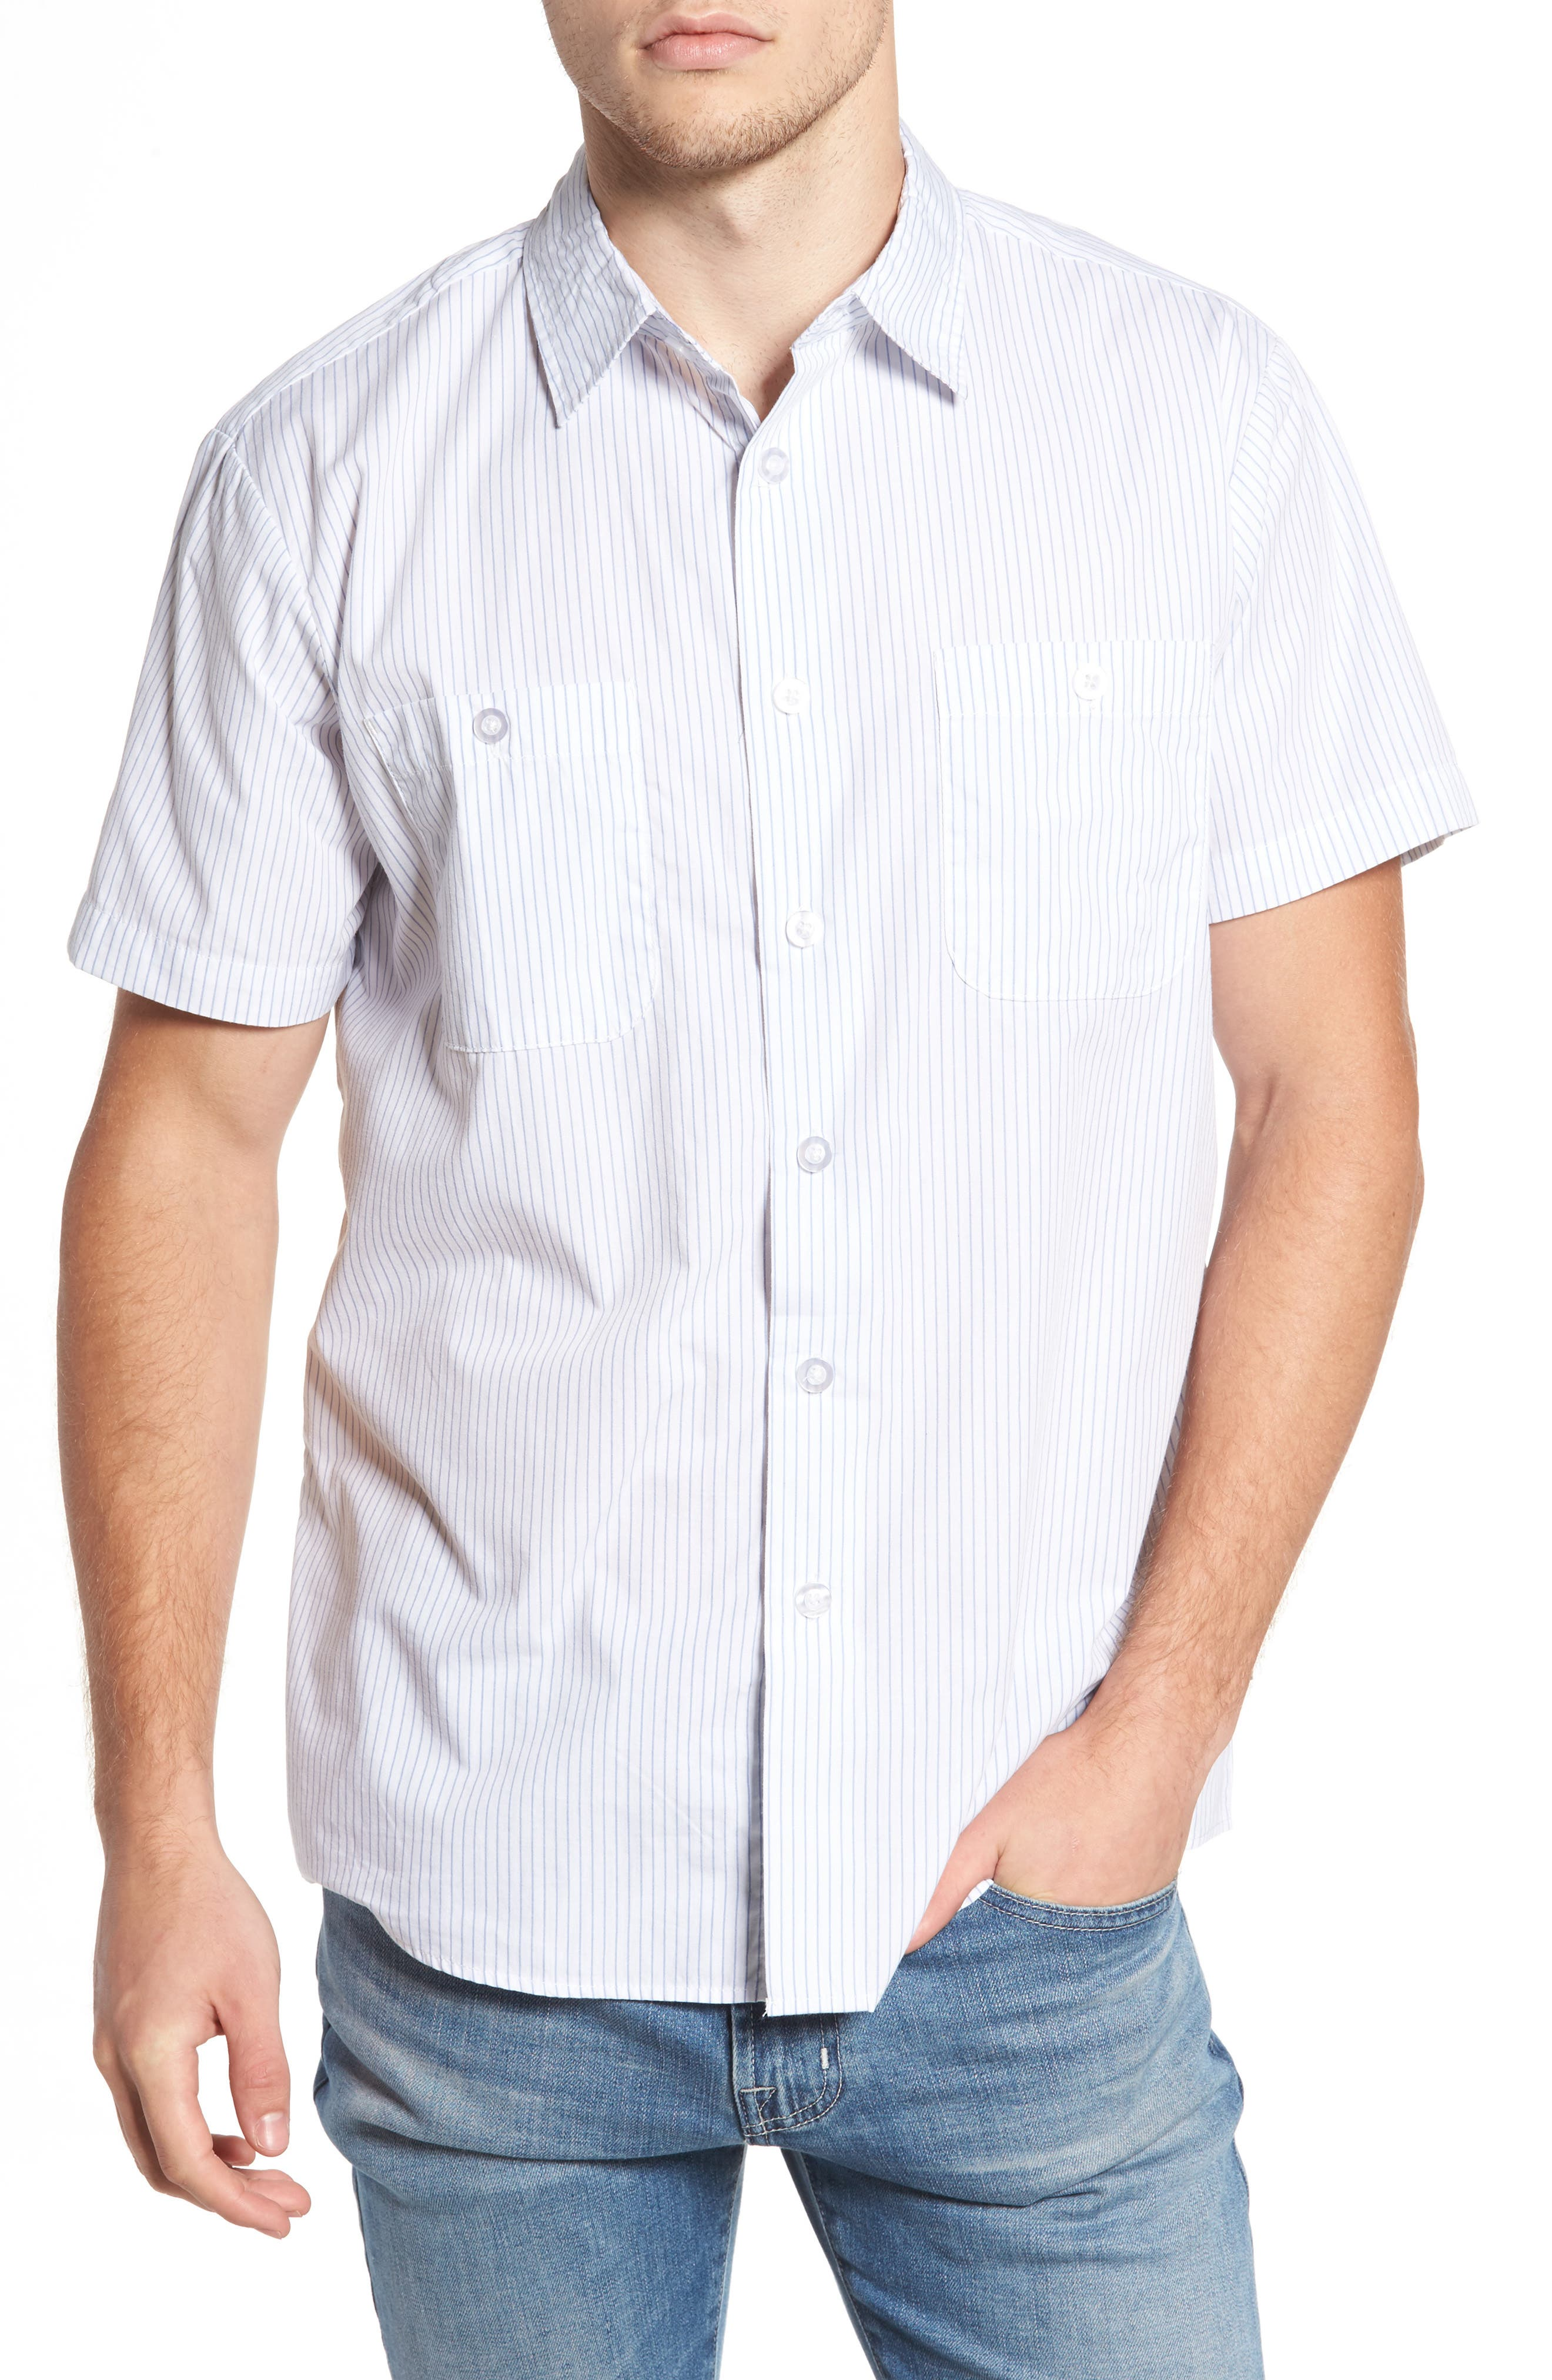 Reeve Pinstripe Woven Shirt,                         Main,                         color, 100